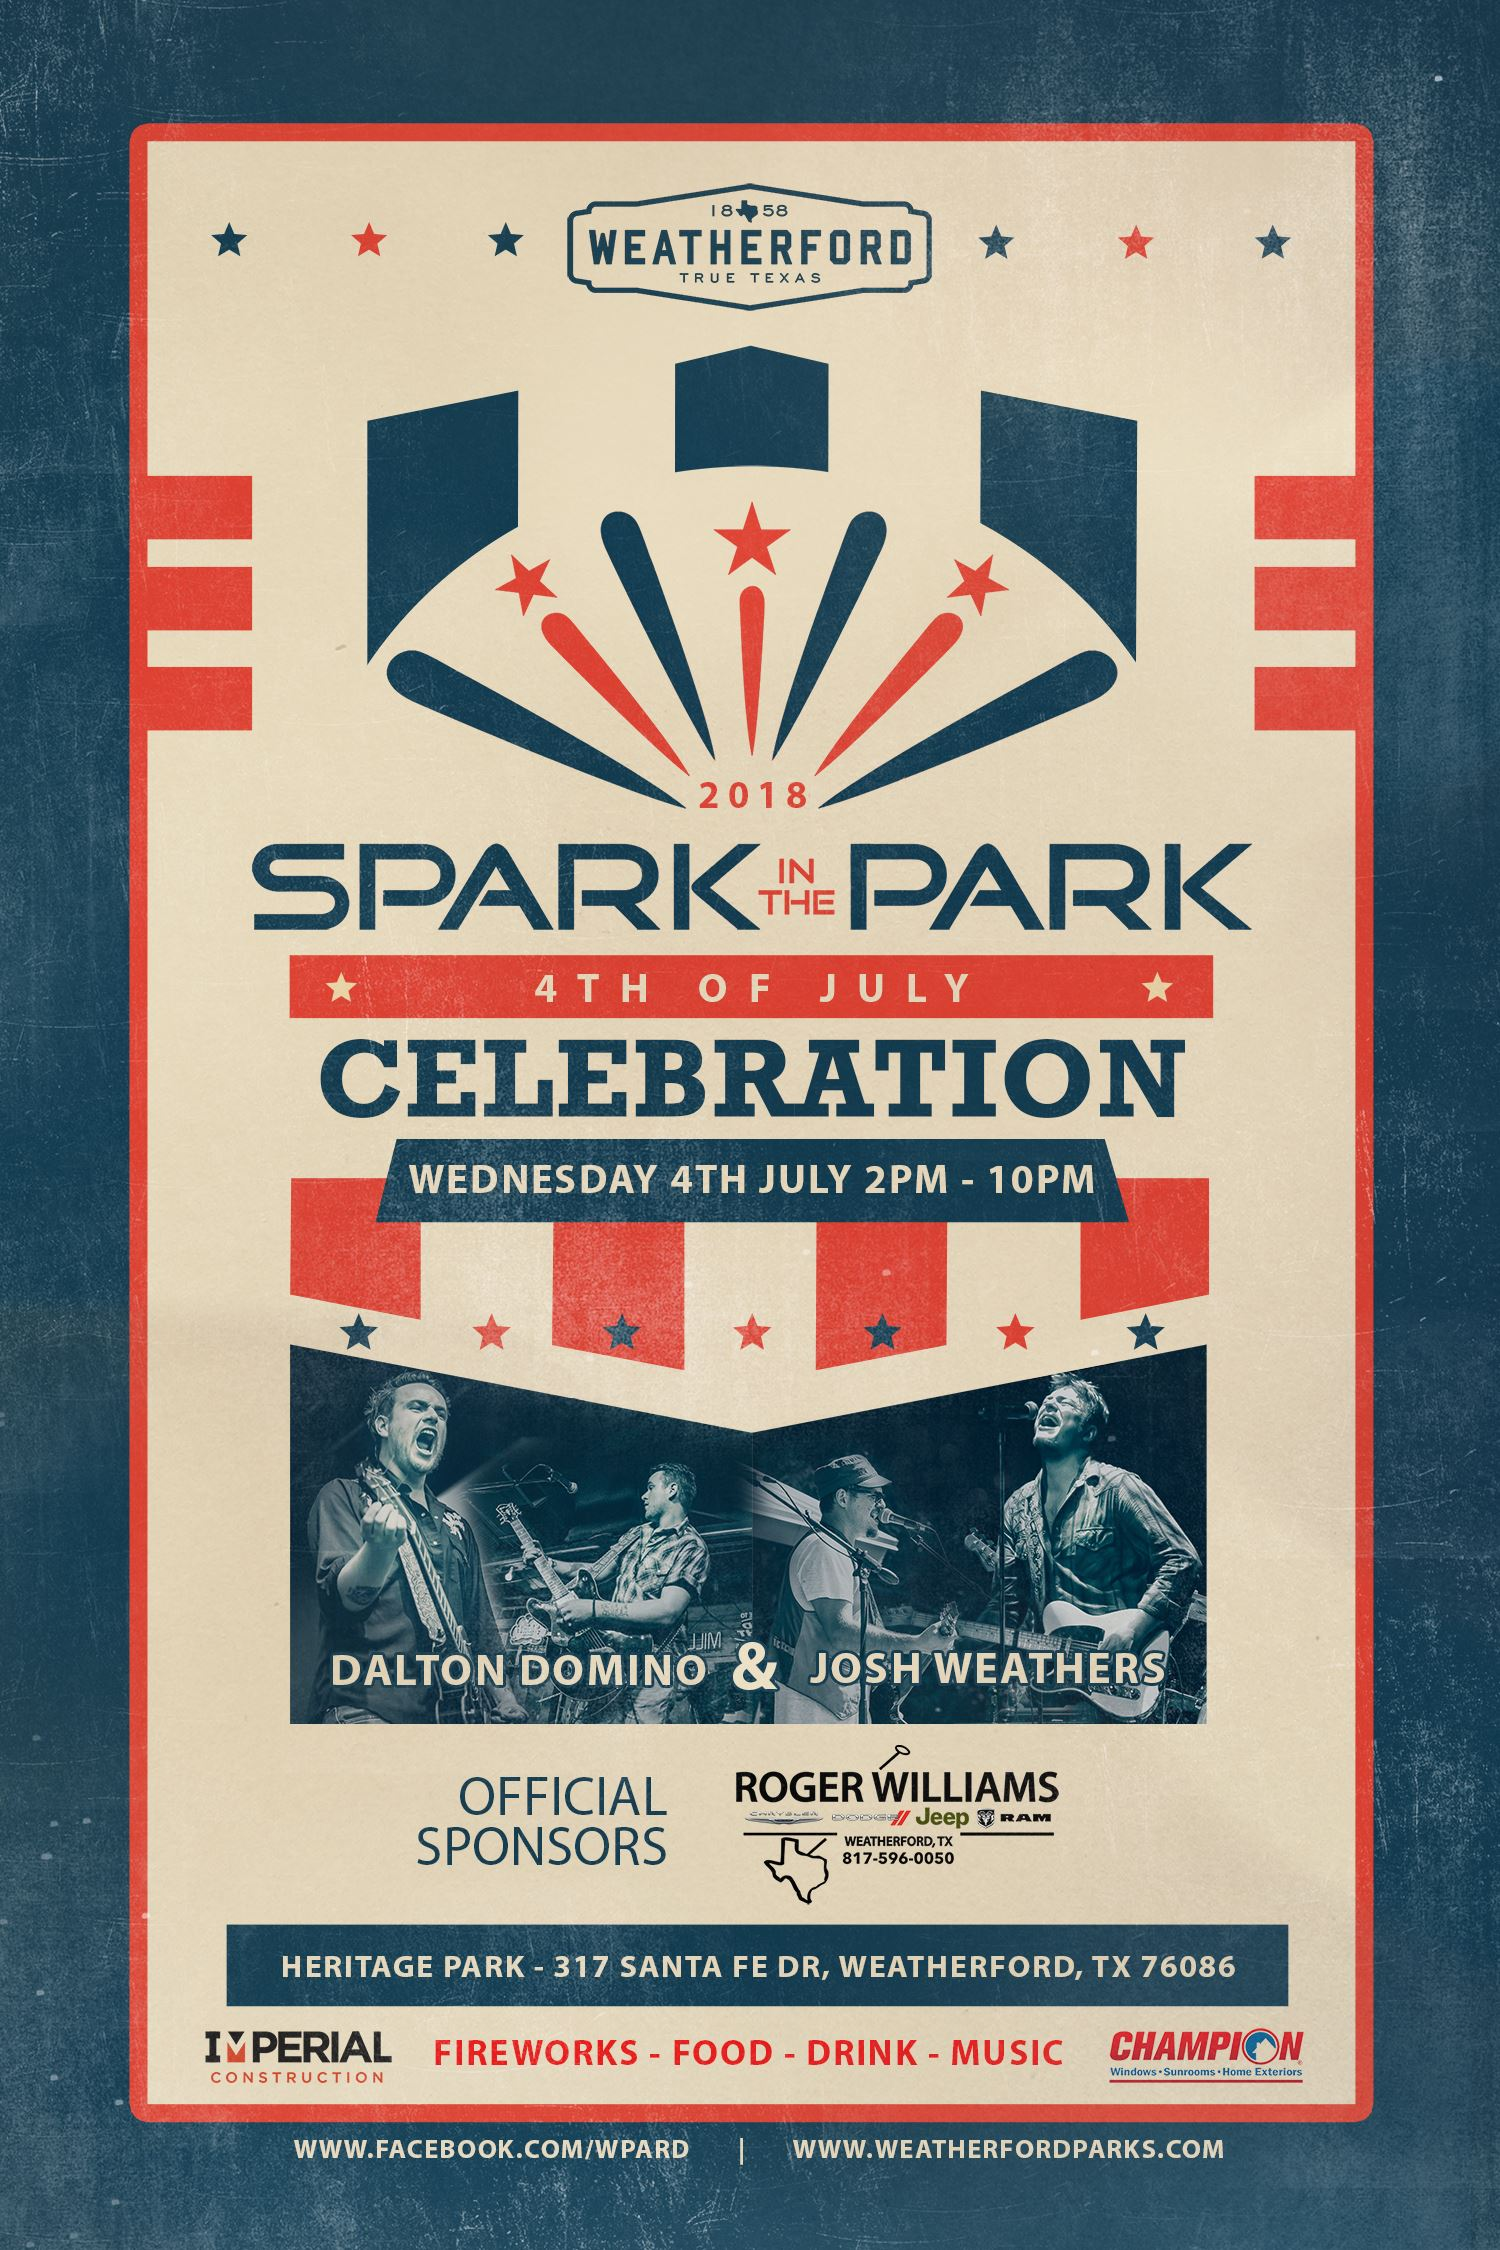 Spark in the Park 2018